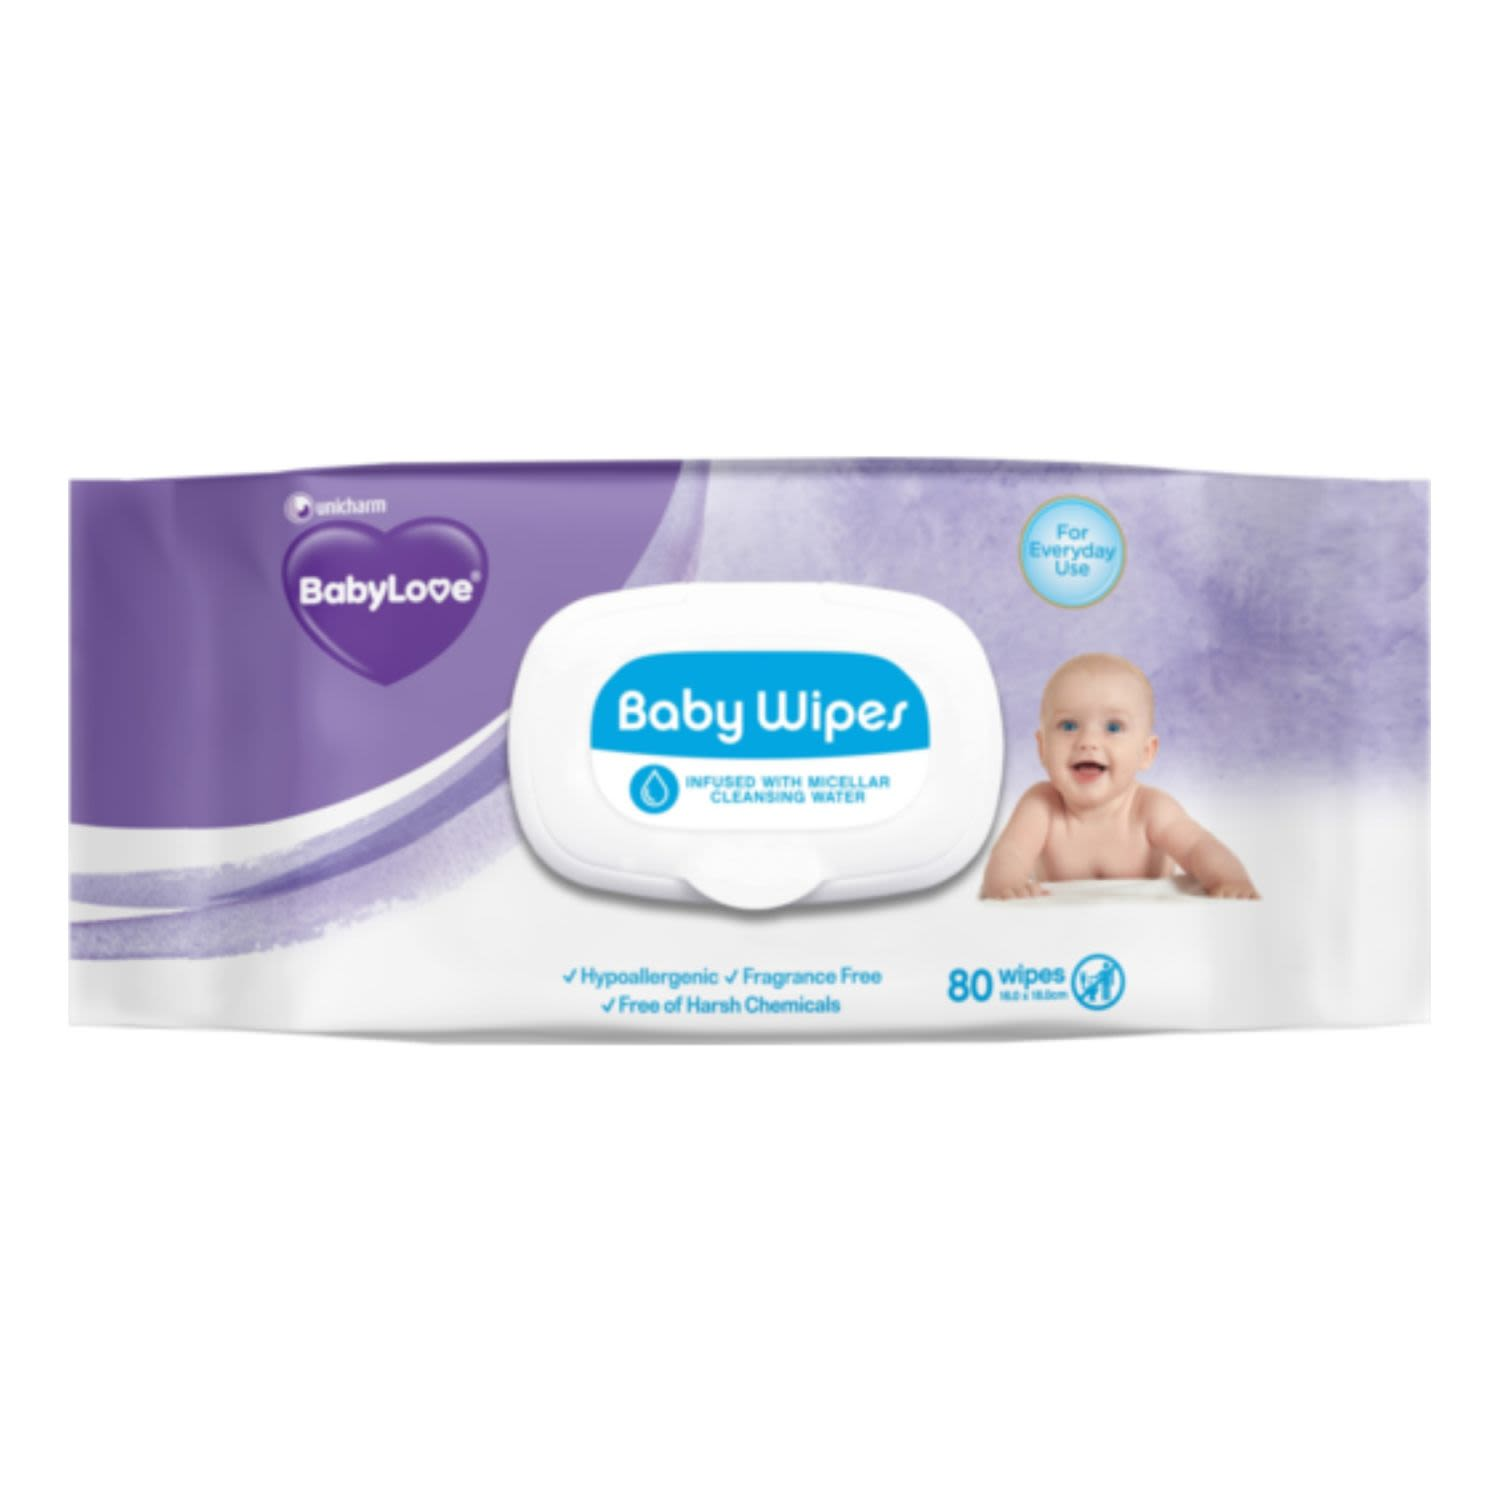 BabyLove Everyday Baby Wipes, 80 Each